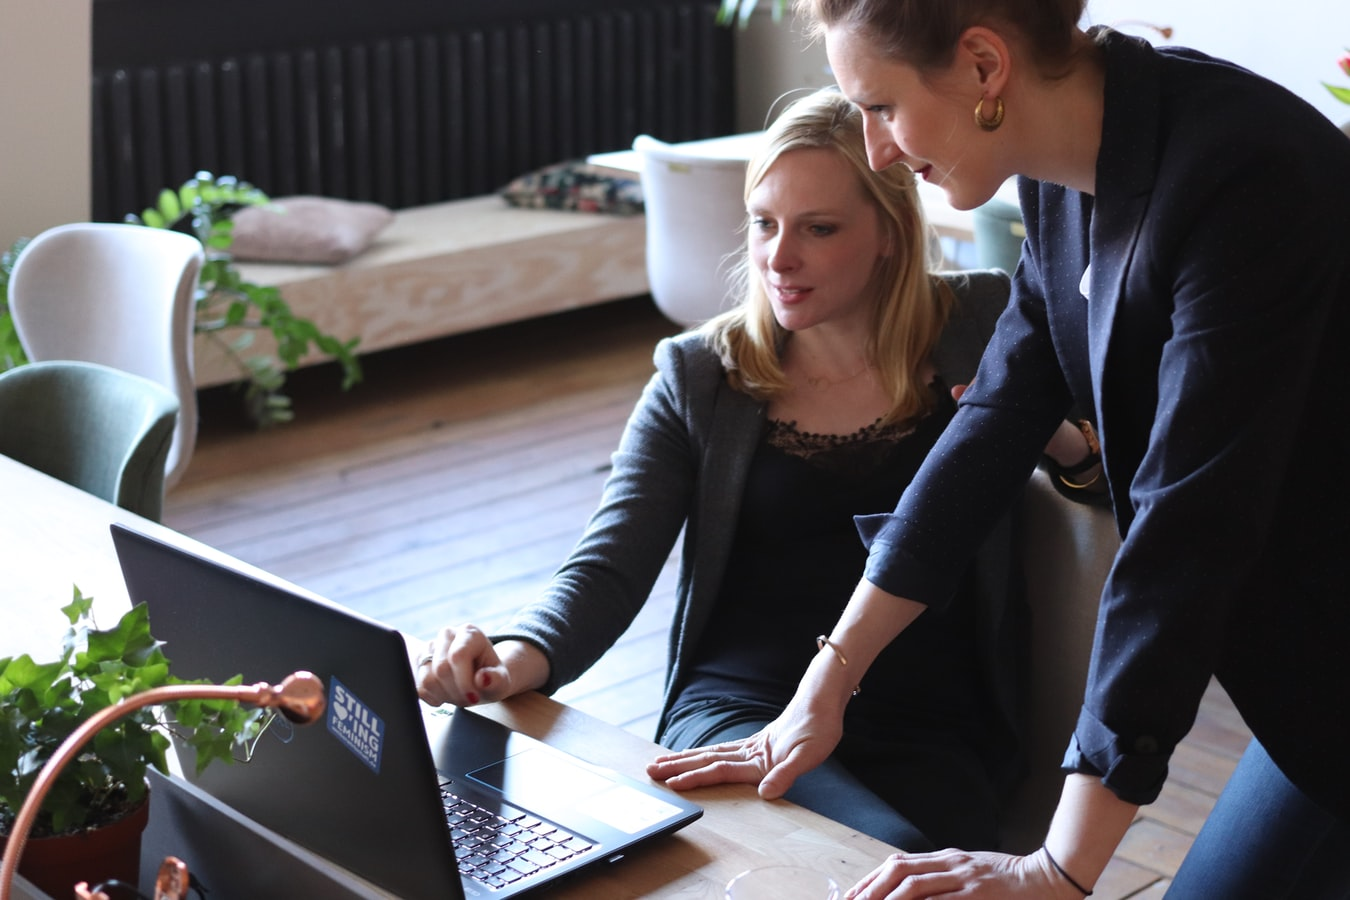 Two people sitting in front of a laptop